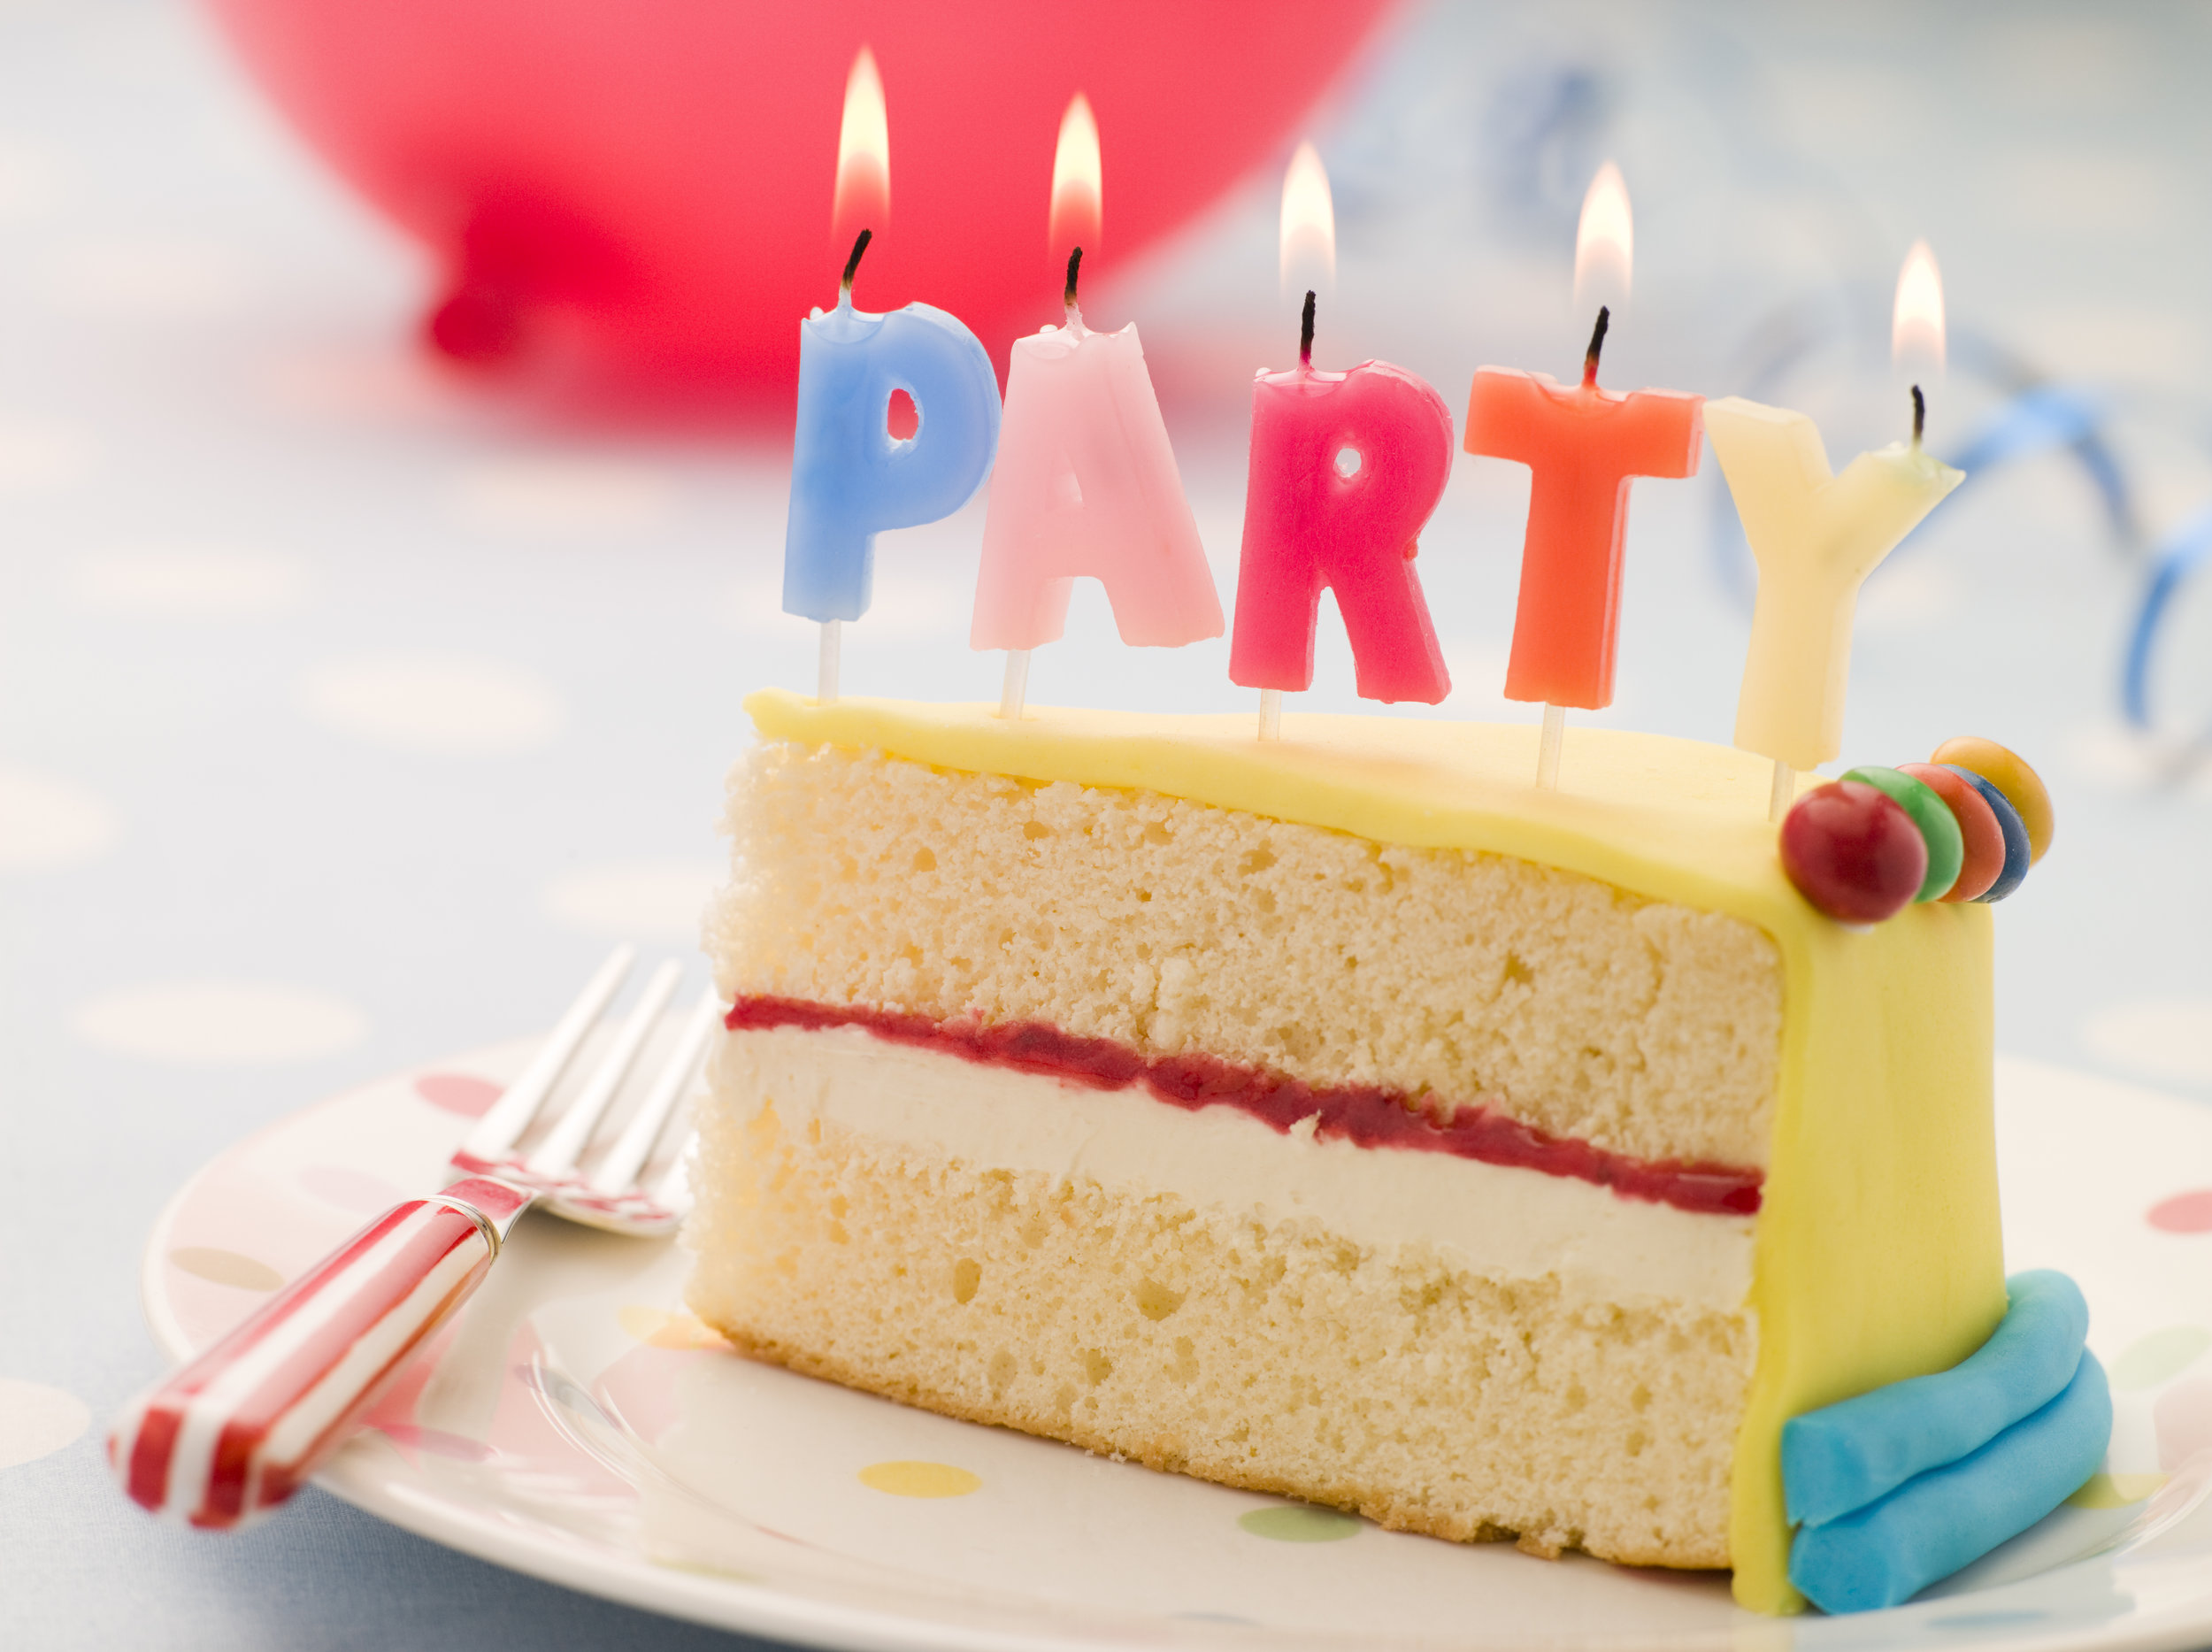 Party Planning website: LYFETYMES is an all-in-one party planning tool.